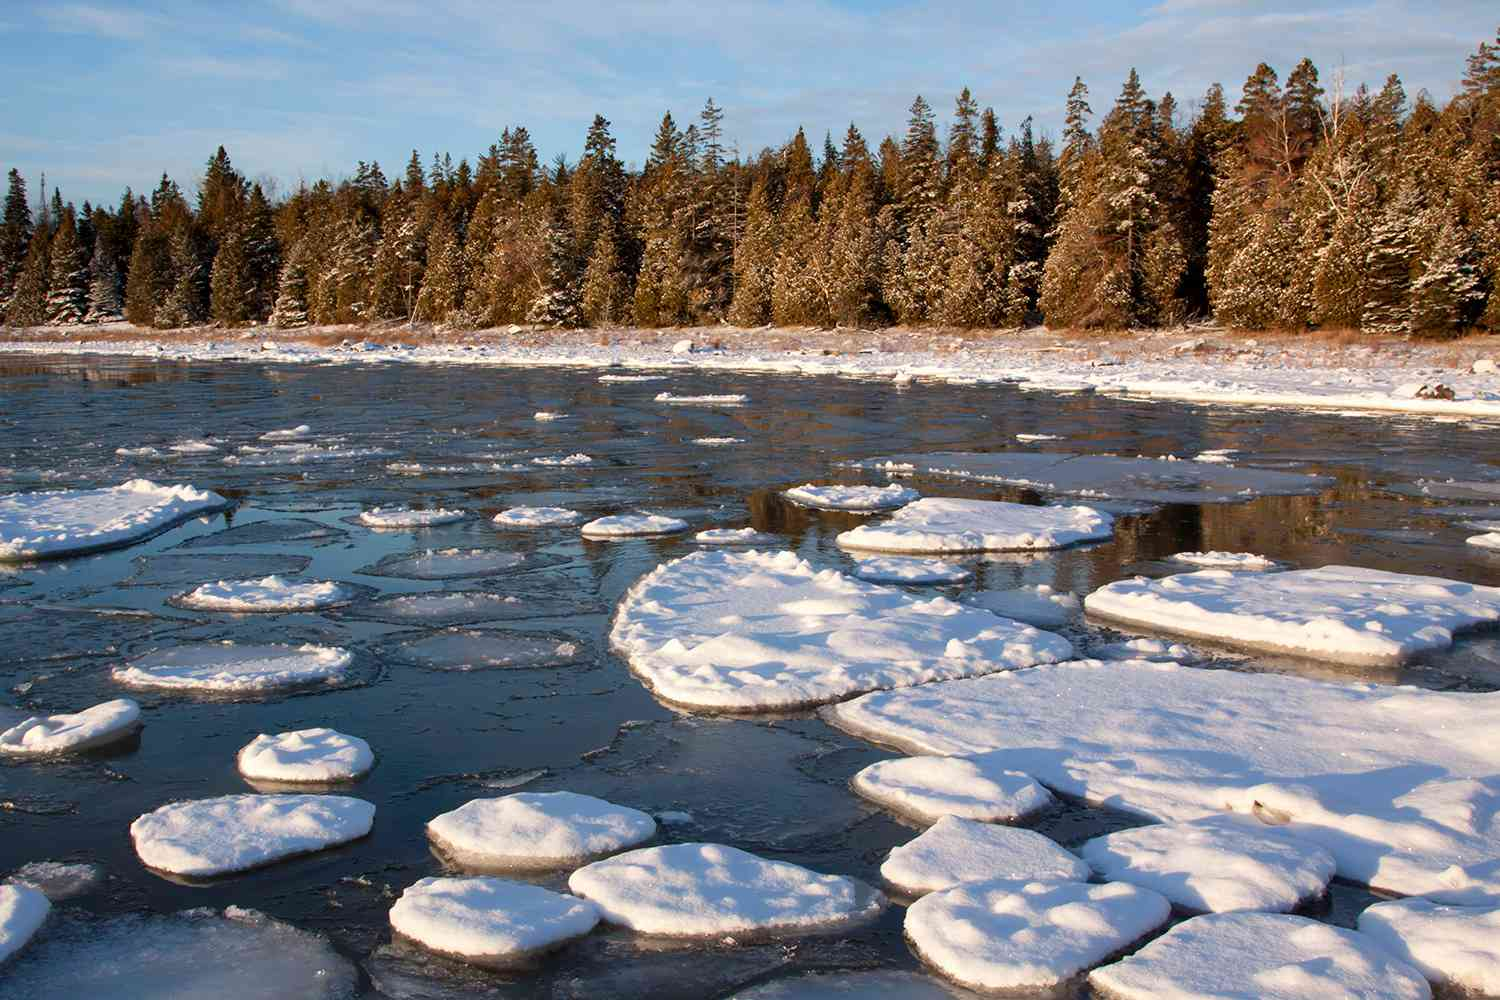 Floating ice pieces covered with snow along forested Lake Huron shore, Detour, Michigan